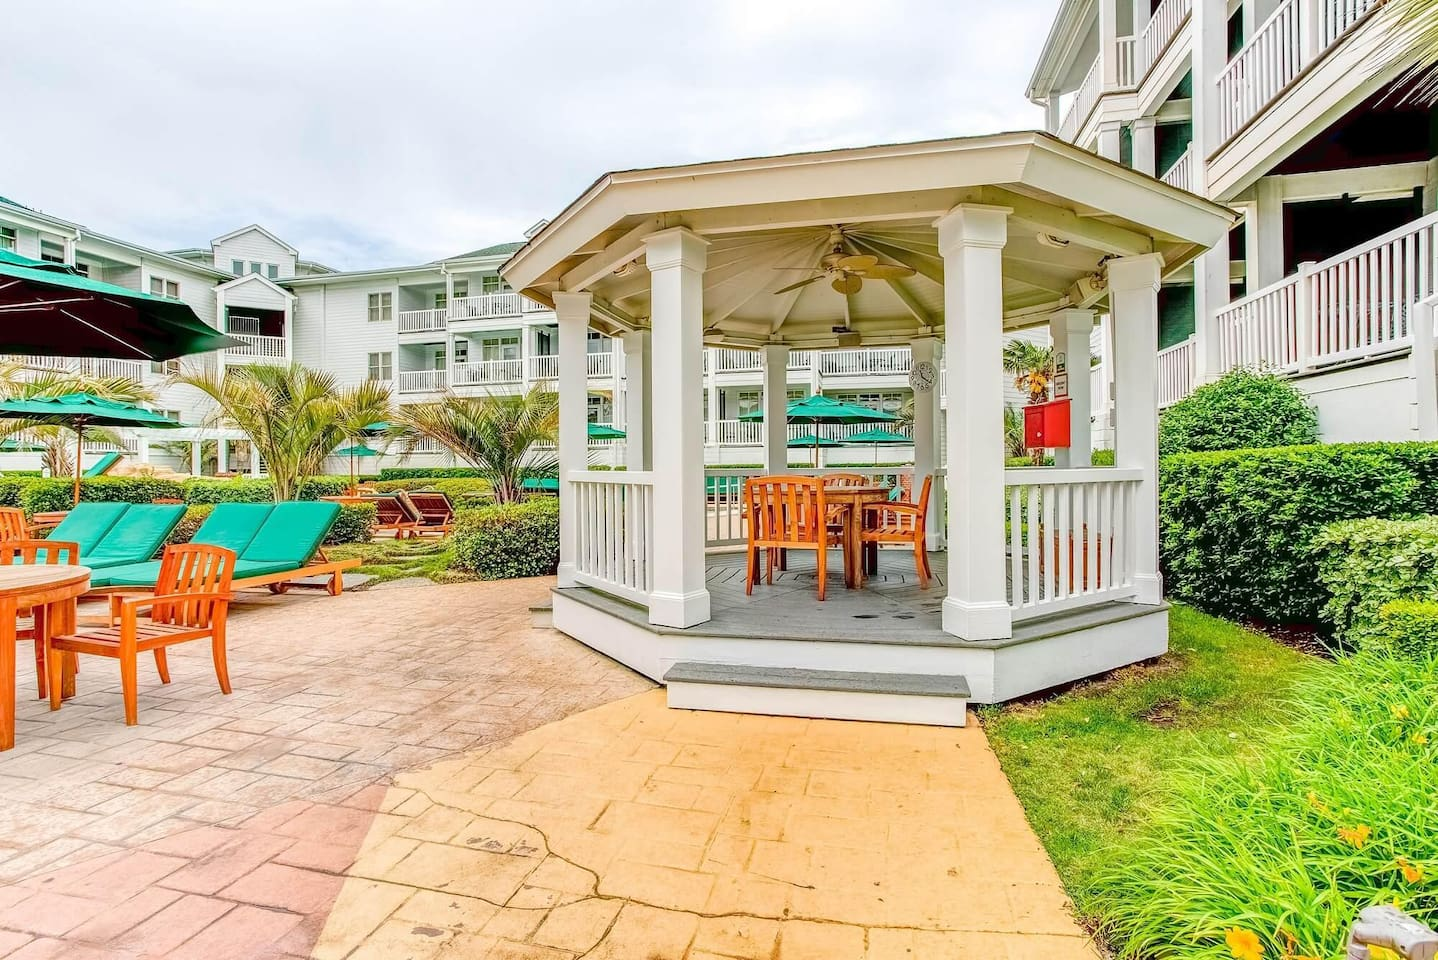 Courtyard - Gazebo - Turtle Cay.jpg